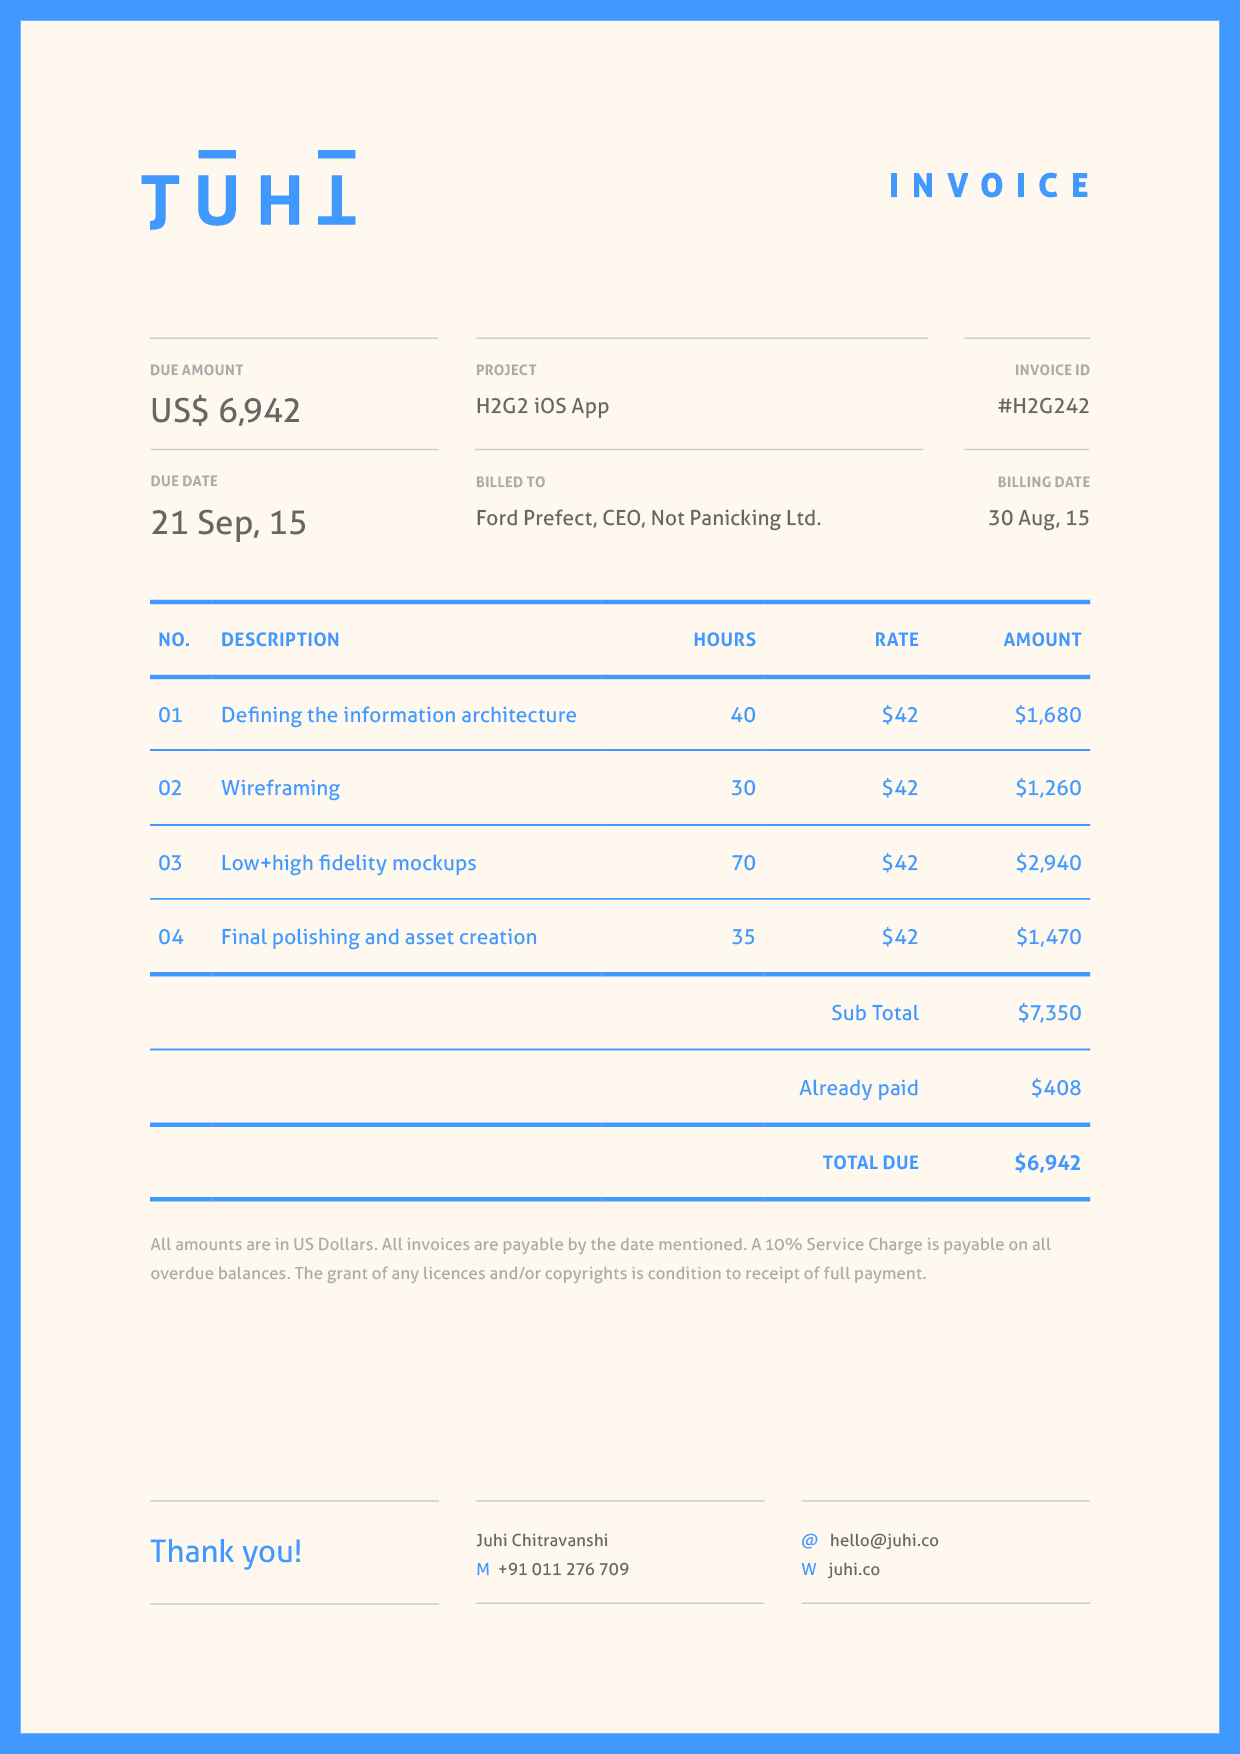 Totallocalus  Winsome Dont Hold Back On Your Invoice  Inspiring Designs  With Exciting Invoice By Juhi Chitravanshi Follow With Nice What Is The Difference Between Invoice And Msrp Also Best Invoicing Software For Freelancers In Addition Music Invoice And Toyota Dealer Invoice As Well As Examples Of Invoices For Services Additionally Woocommerce Invoice Plugin From Inspirationfeedcom With Totallocalus  Exciting Dont Hold Back On Your Invoice  Inspiring Designs  With Nice Invoice By Juhi Chitravanshi Follow And Winsome What Is The Difference Between Invoice And Msrp Also Best Invoicing Software For Freelancers In Addition Music Invoice From Inspirationfeedcom